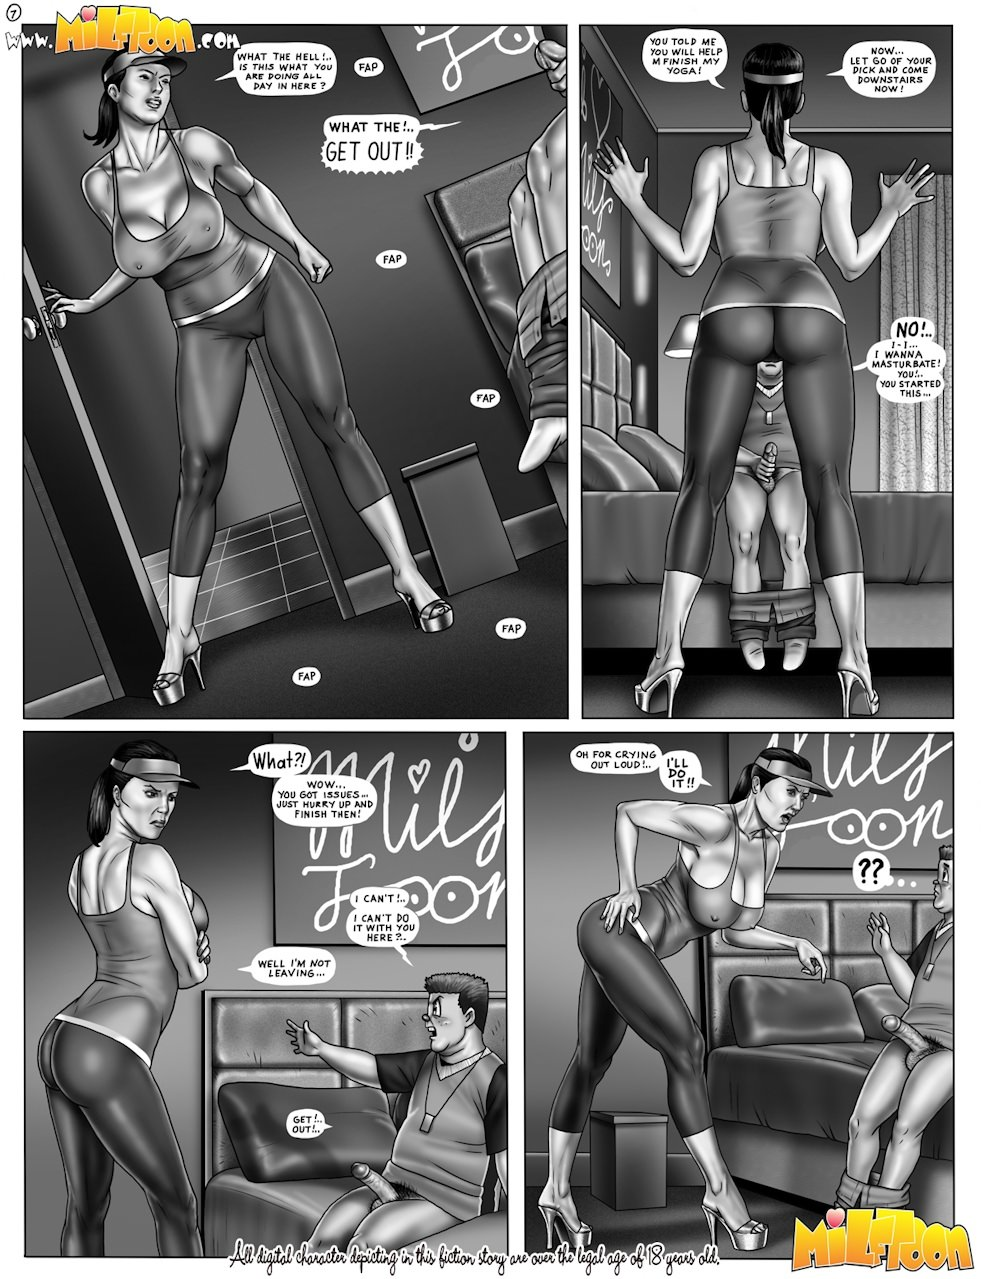 Gta 5 xxx cartoon sexy image